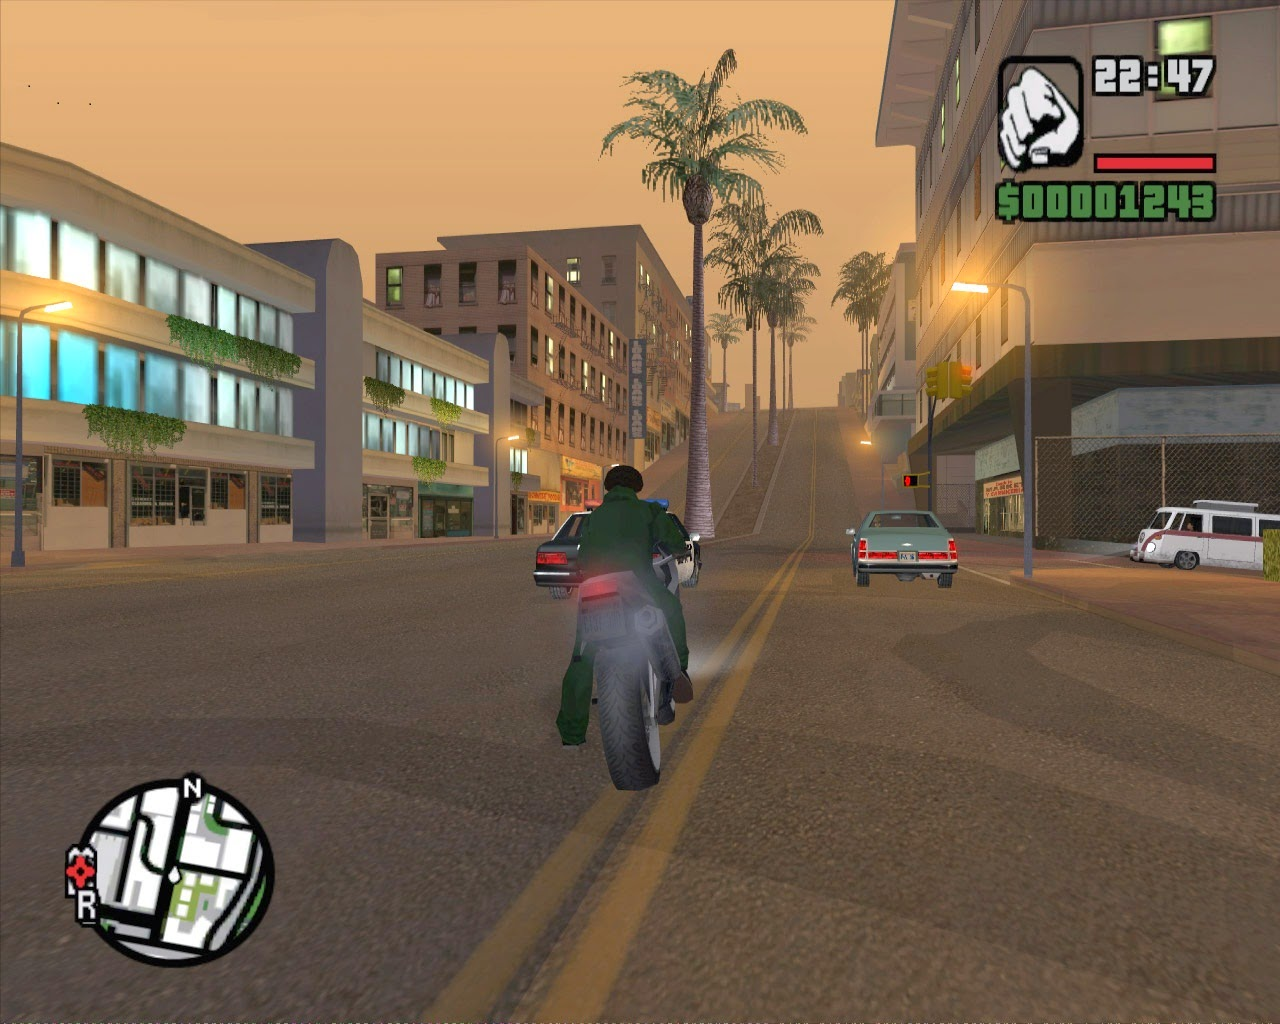 GTA San andreas Game For Pc Full Version